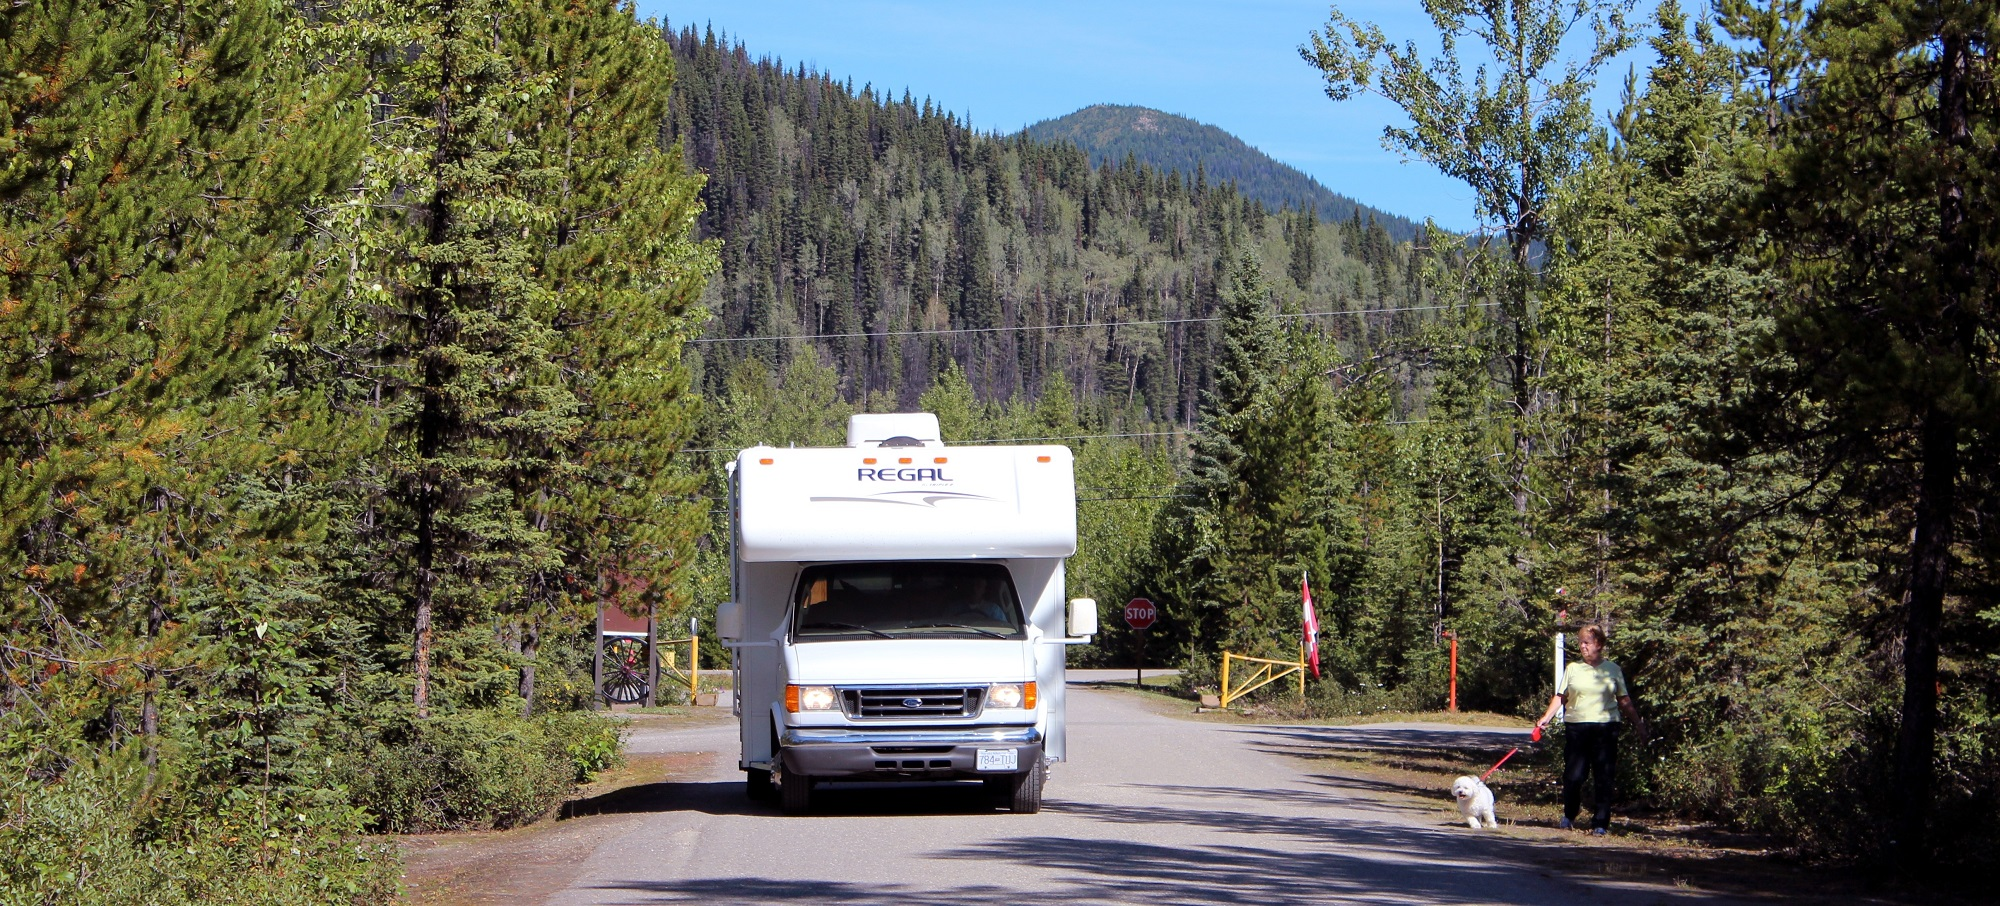 RV and Camper Rentals